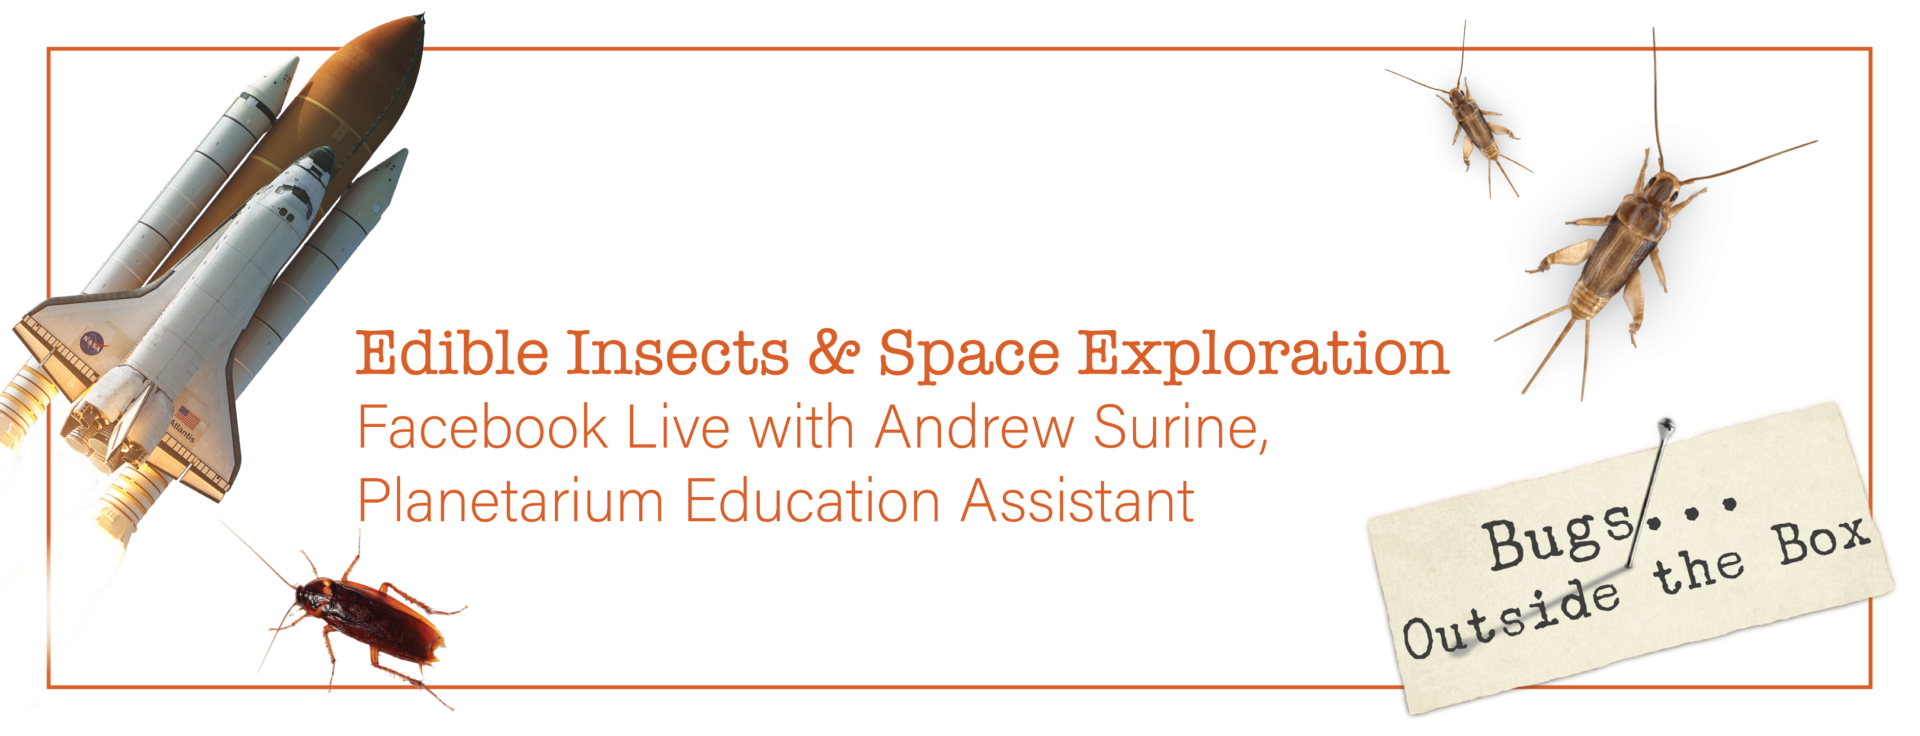 """A rocket ship and bugs surrounding the text, """"Edible Insects and Space Exploration with Andrew Surine, planetarium education assistant"""""""